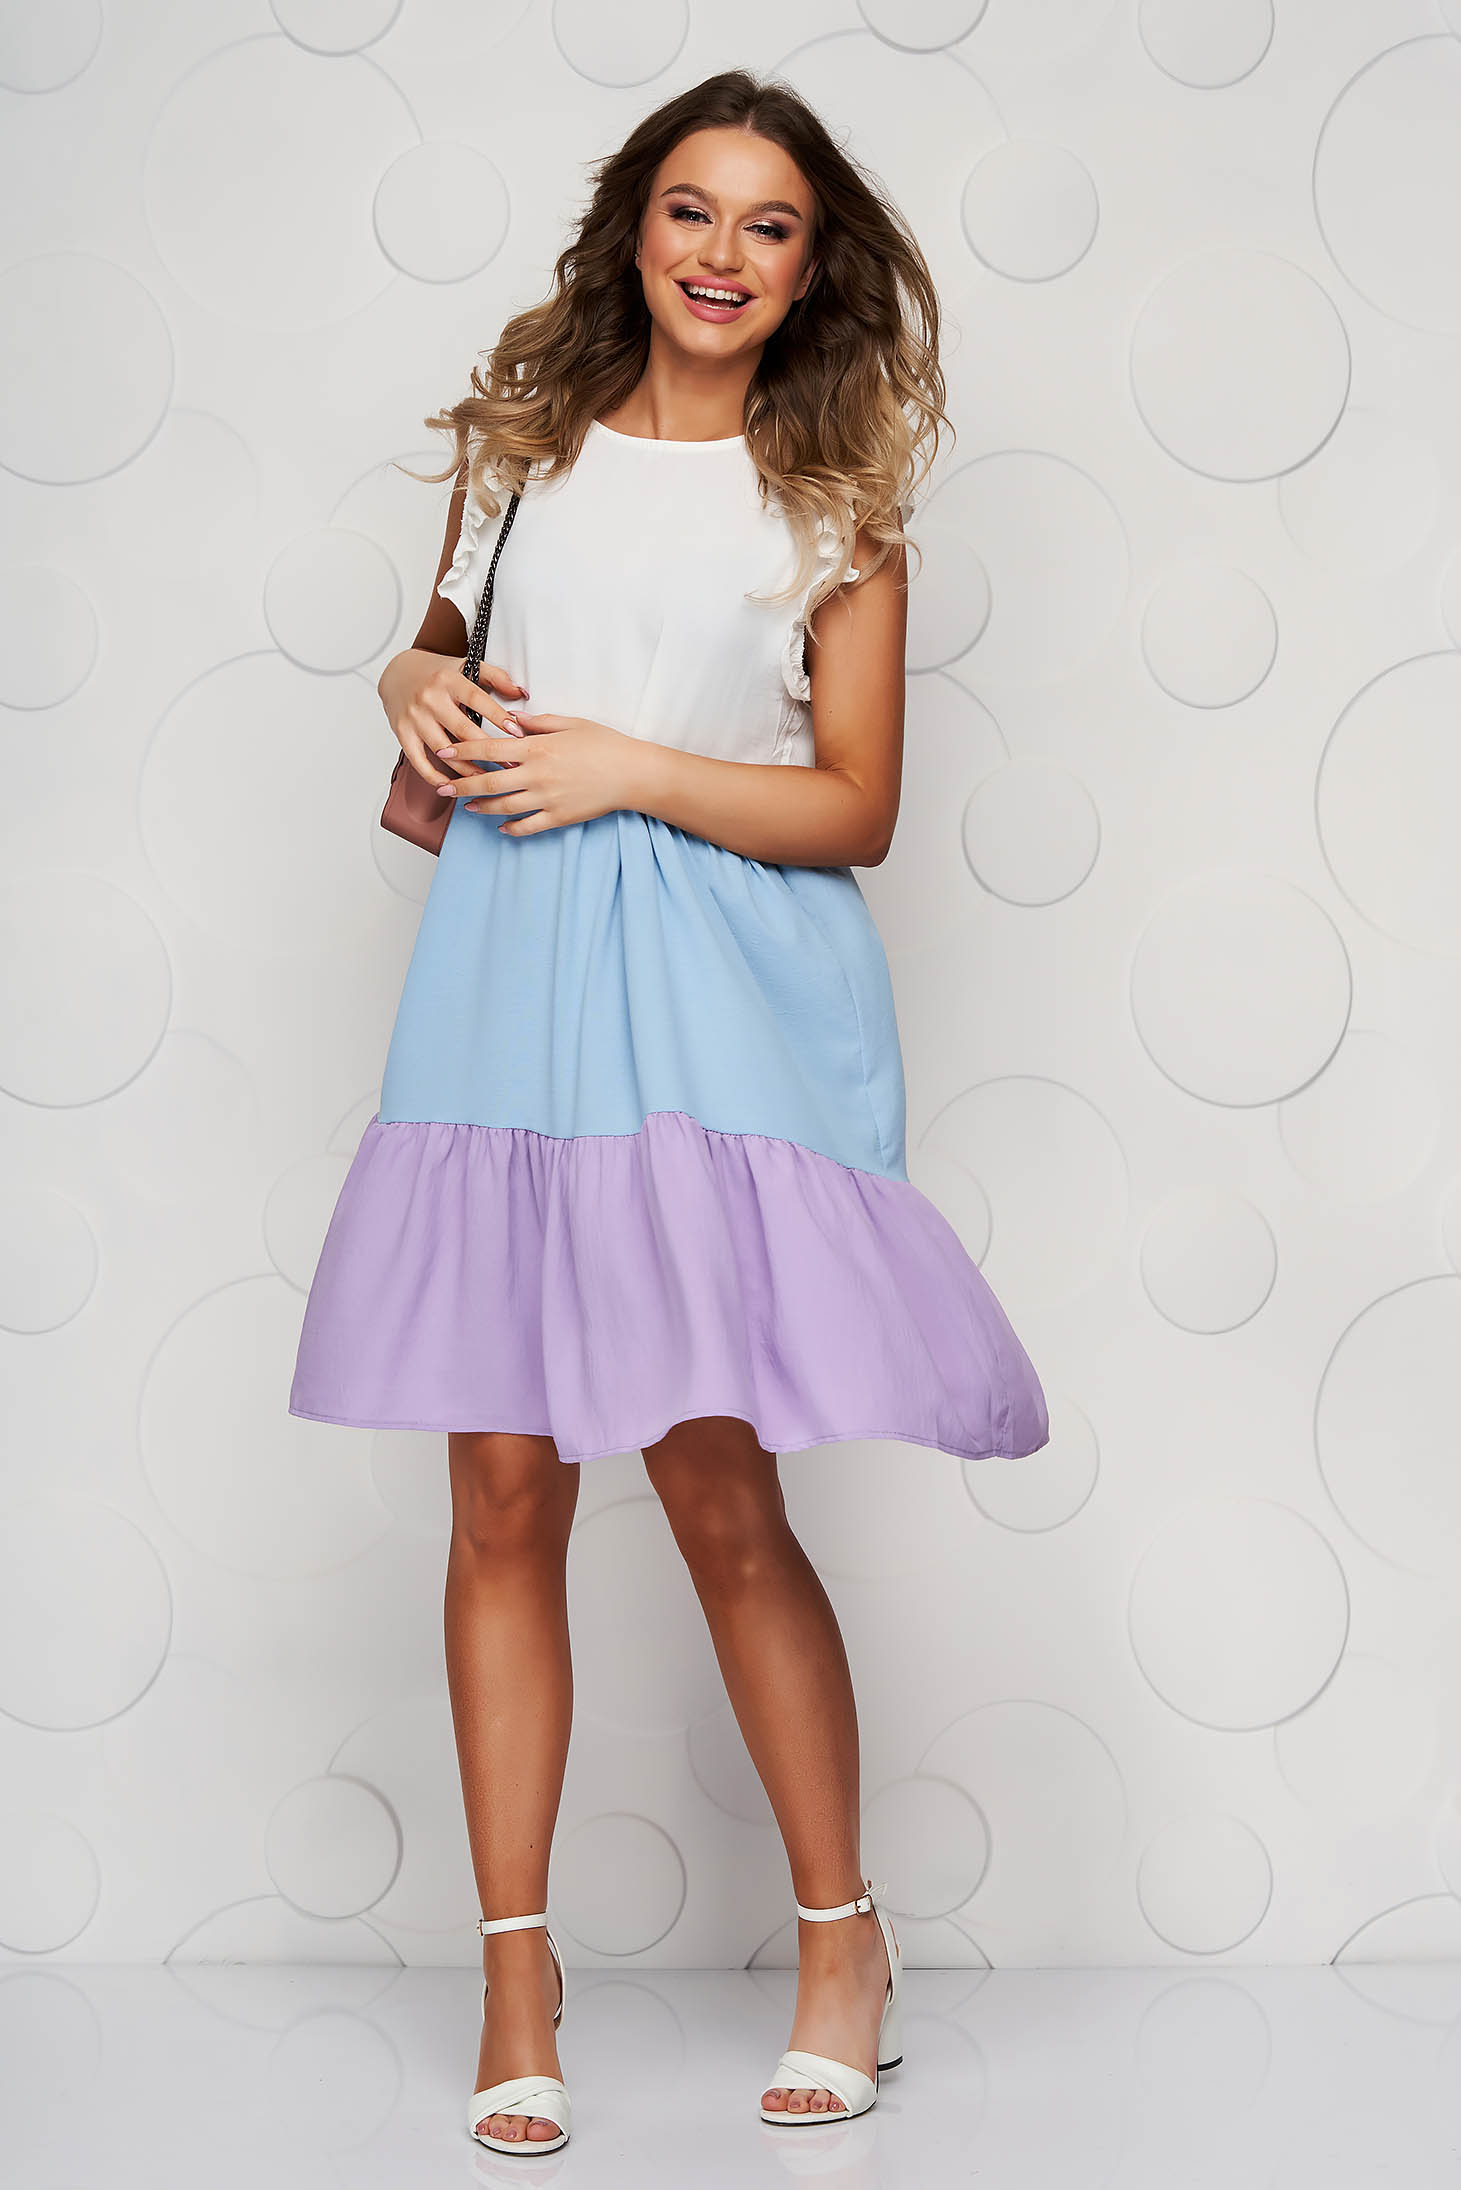 Lila dress thin fabric airy fabric loose fit with ruffle details